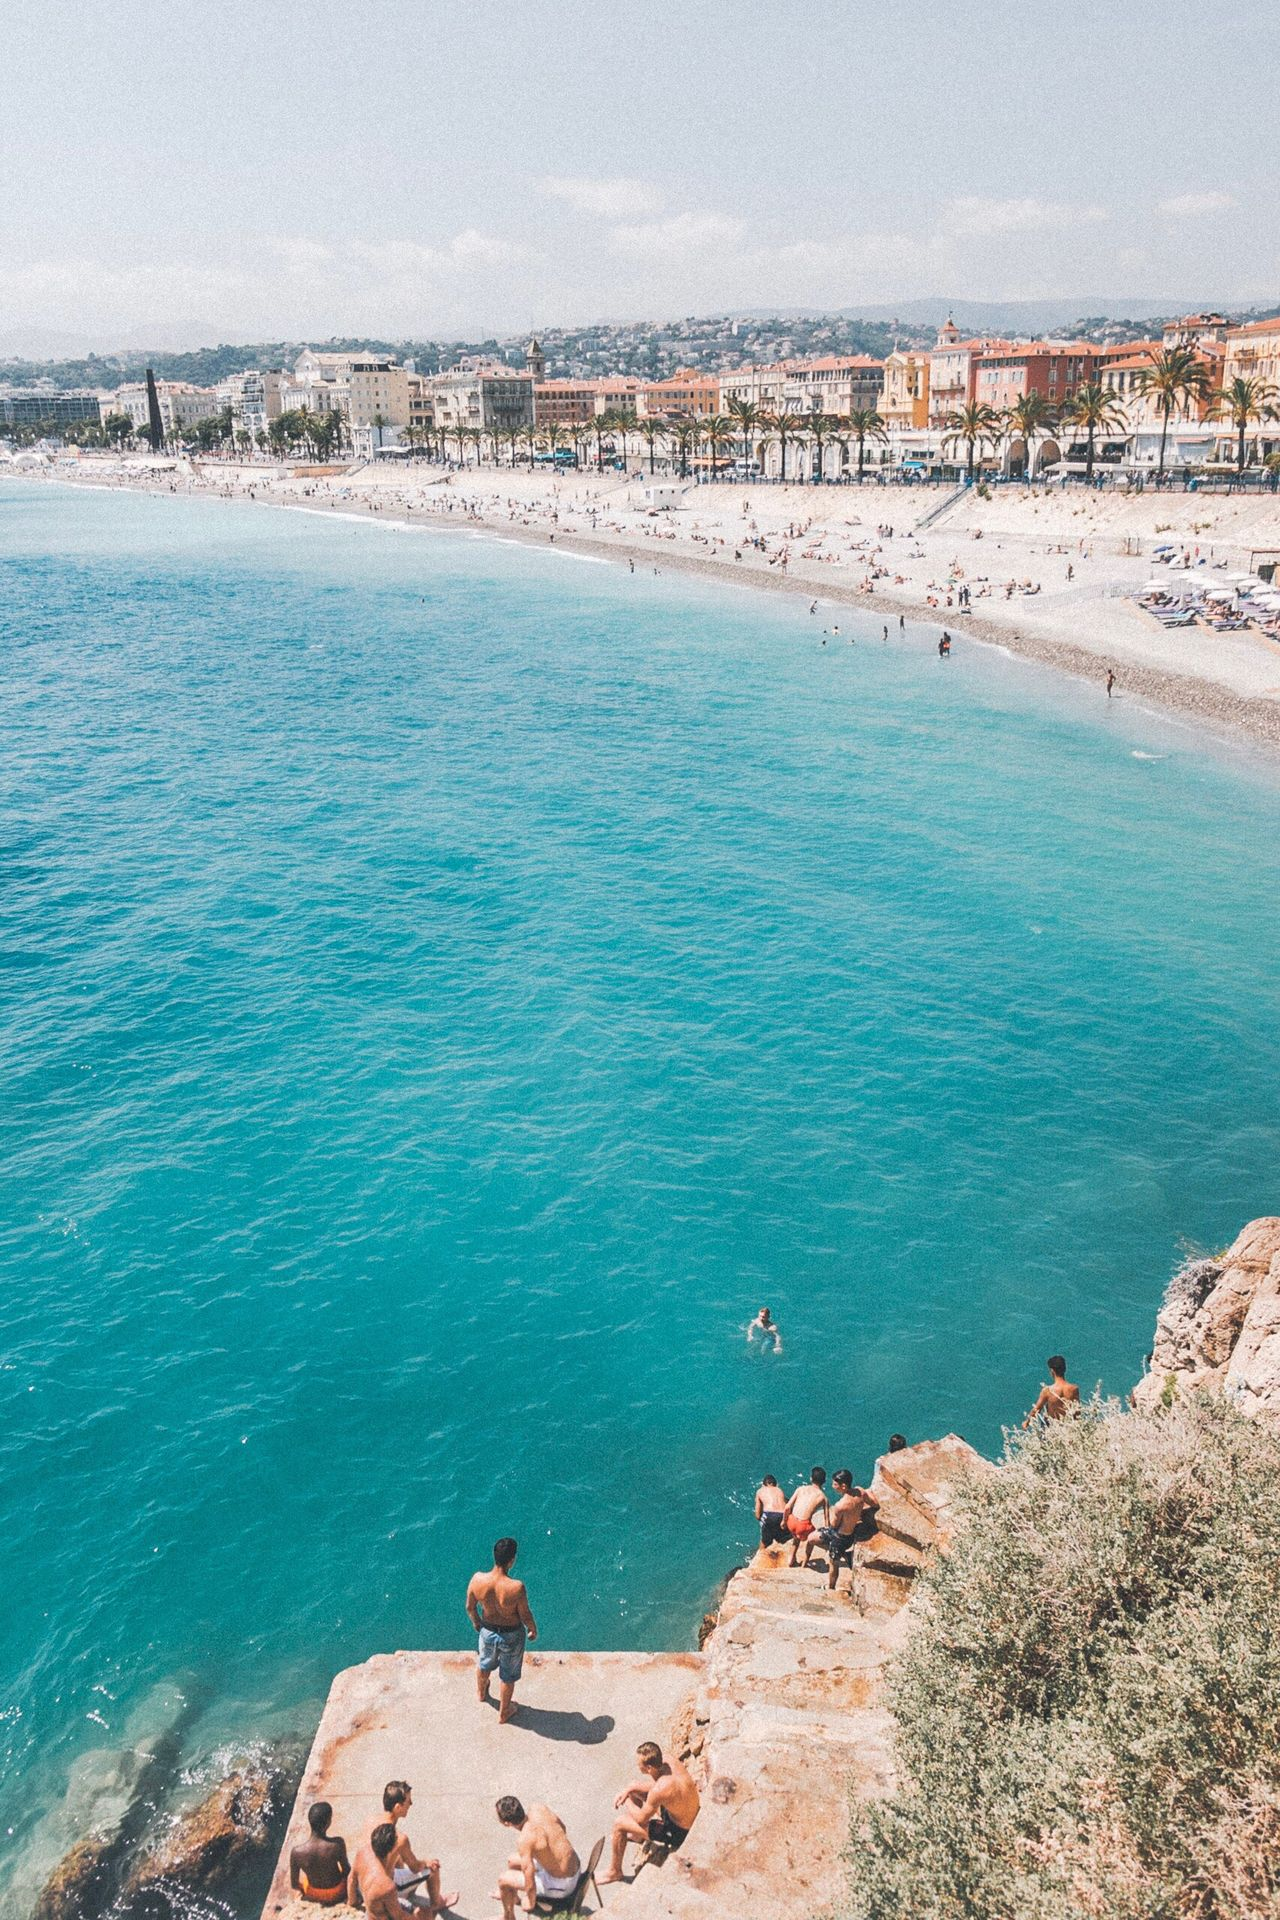 French Riviera summer vibes Water Beach High Angle View Day Nature Sand Scenics Rock - Object Beauty In Nature Outdoors Tranquility Architecture Built Structure Large Group Of People Real People Sky Building Exterior Horizon Over Water Swimming EyeEm Best Shots France EyeEm Live For The Story Live For The Story The Great Outdoors - 2017 EyeEm Awards